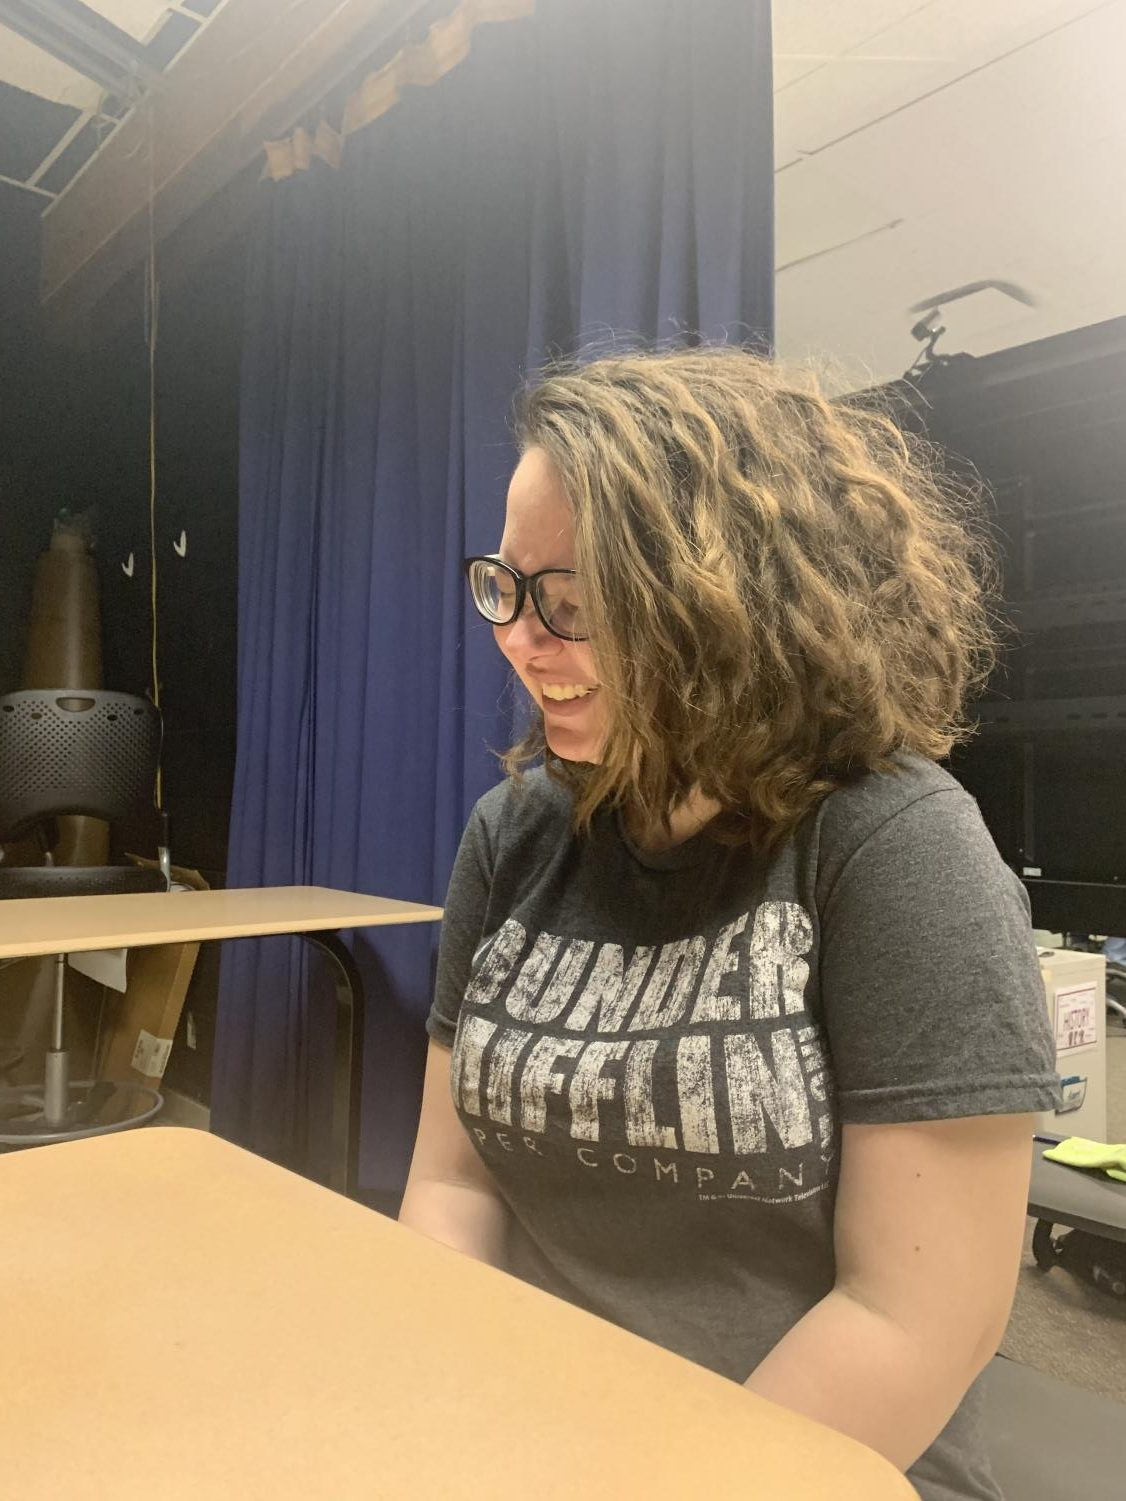 """""""One piece of advice I would give to someone is to drink more water,"""" sophomore Audrey Trammell said. """"It sounds very nerdy, but I started drinking water and my skin cleared up and I started getting up earlier, overall I felt a lot better."""""""